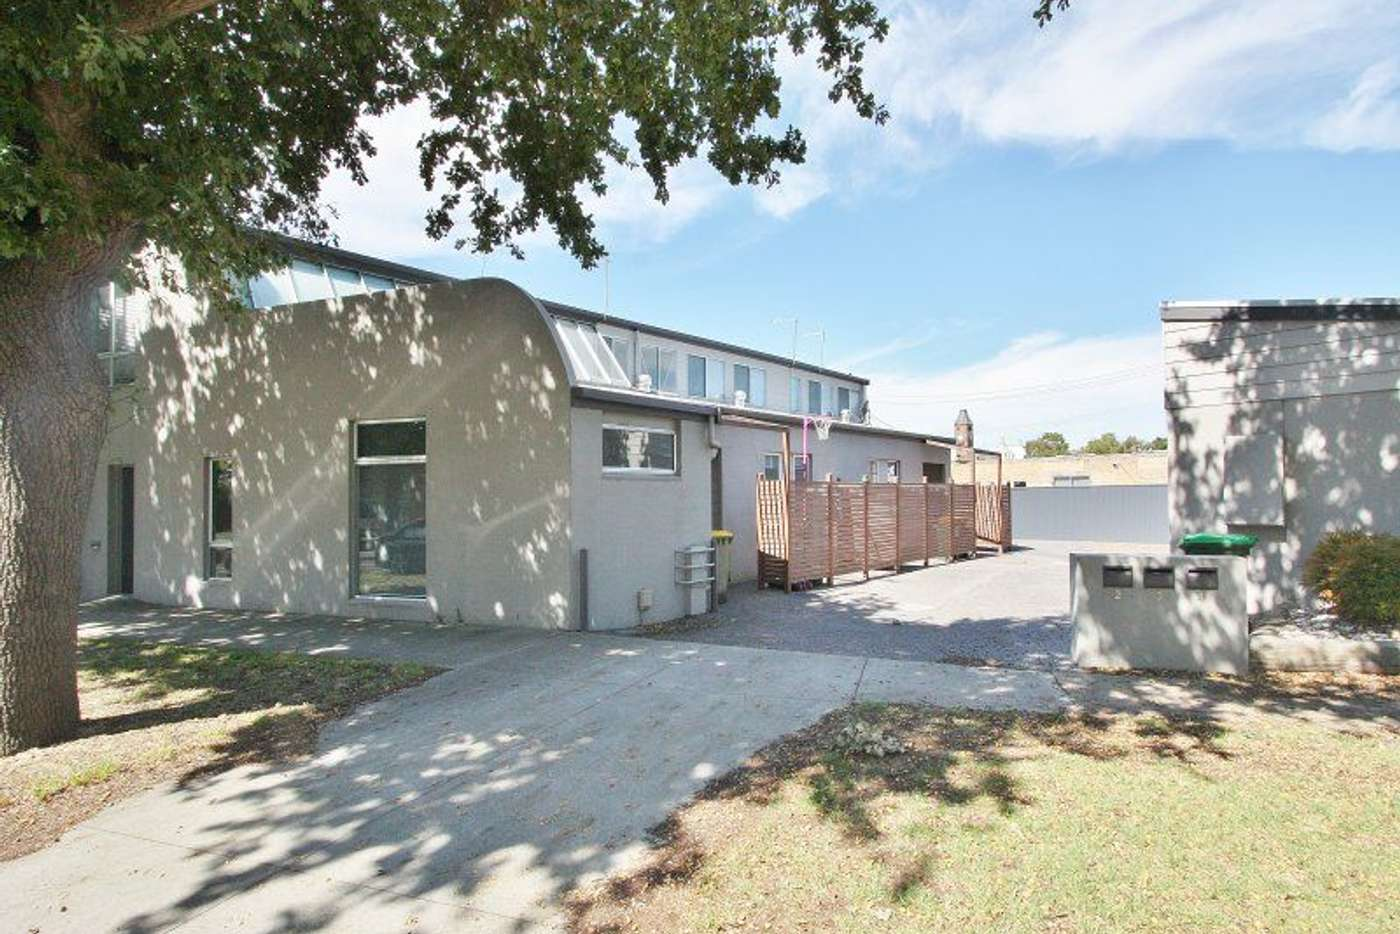 Main view of Homely house listing, 2/5 Brooke Street, Camperdown VIC 3260